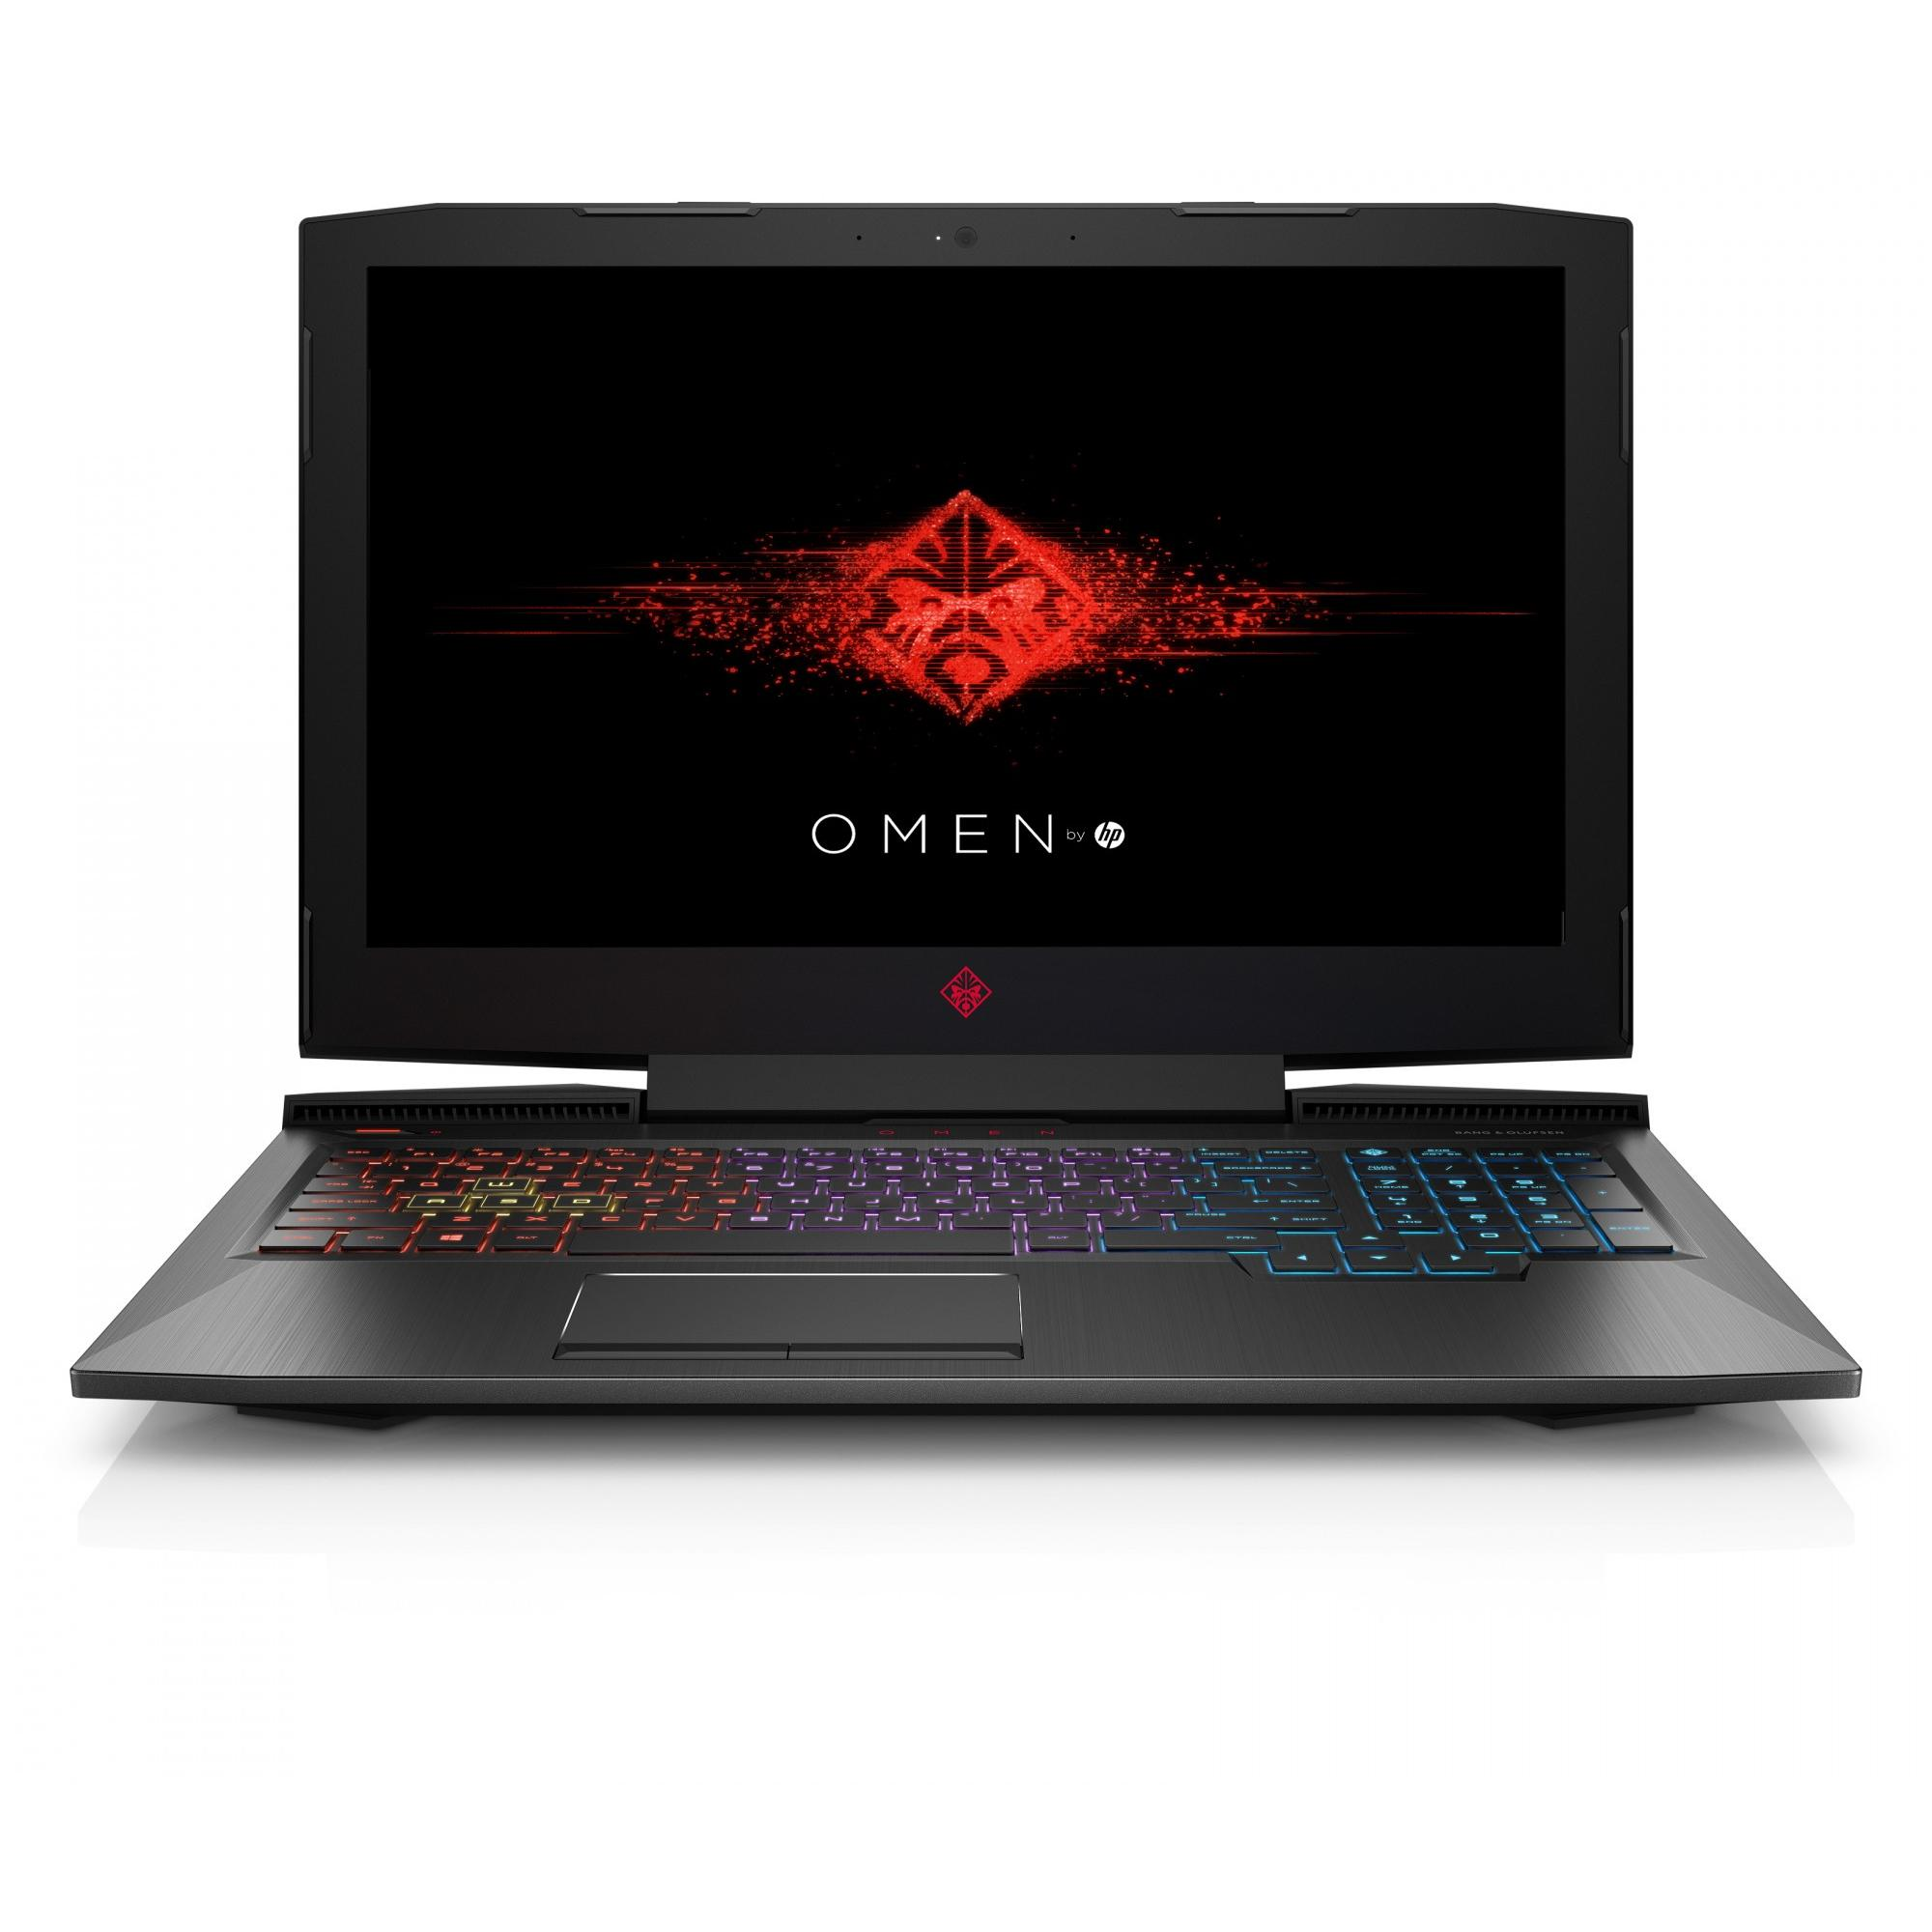 HP Omen Gaming Laptop 15.6� Full HD, Intel Core i7-8750H, NVIDIA GeForce GTX 1060 Graphics, 1TB HDD + 256GB SSD, 16GB... by HP